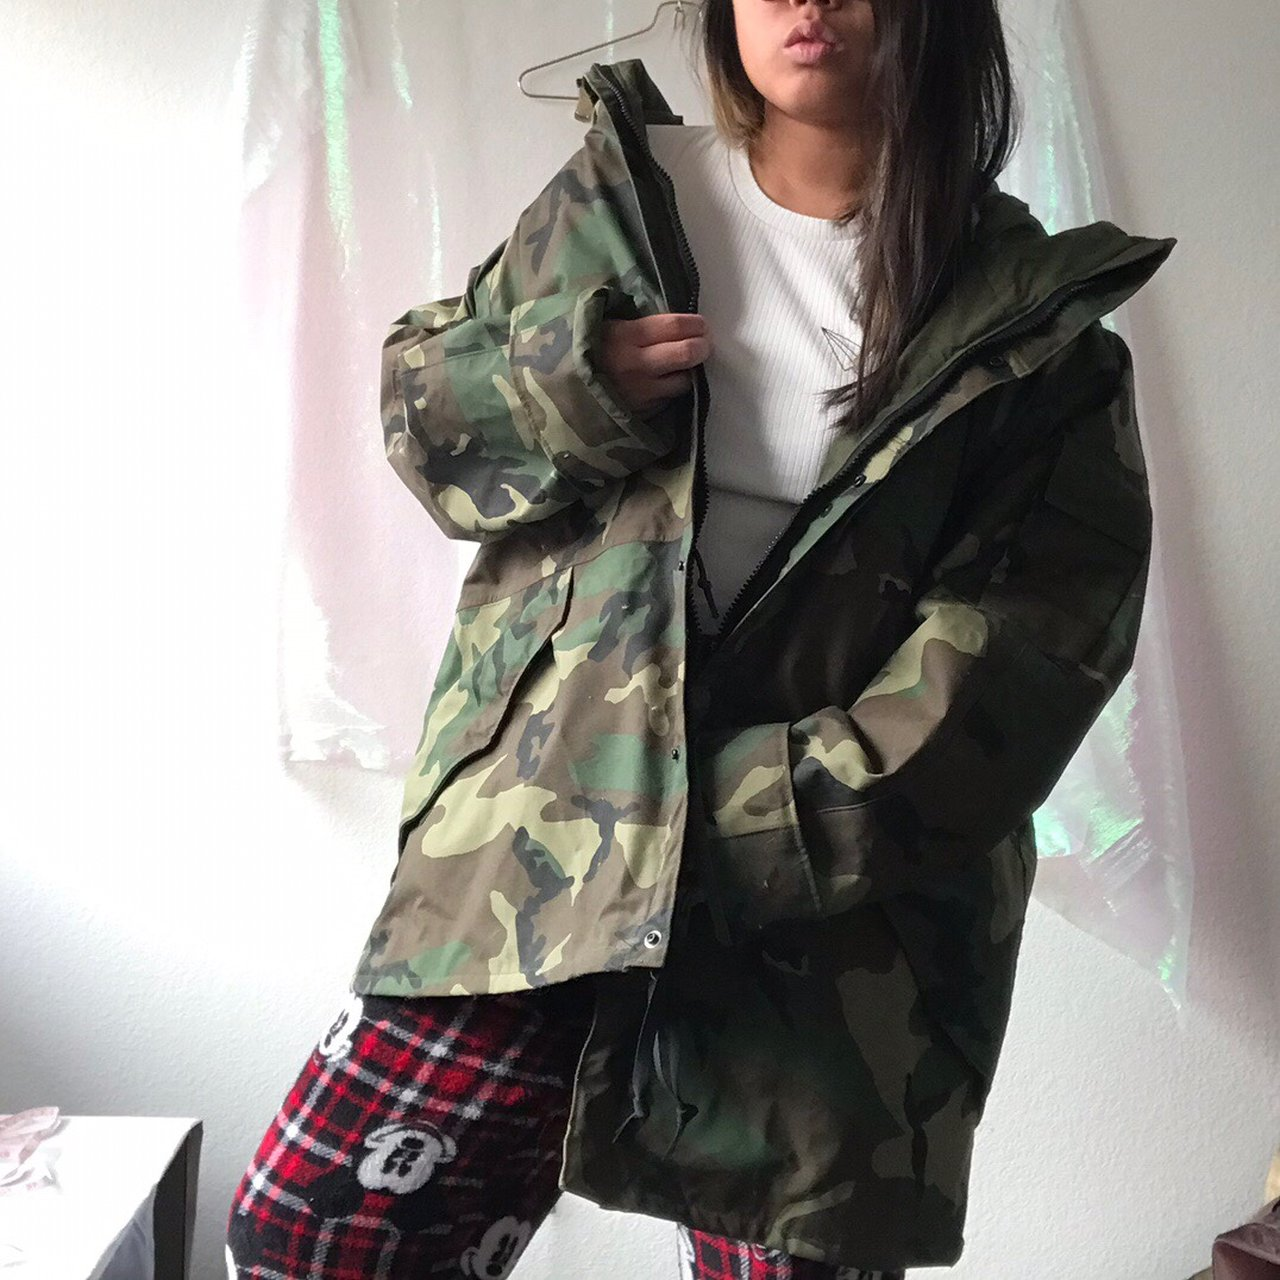 c76f54b5fbd0d FREE SHIPPING 🎉 🌲🍃✨ US ARMY ISSUE GORETEX CAMOUFLAGE by & - Depop